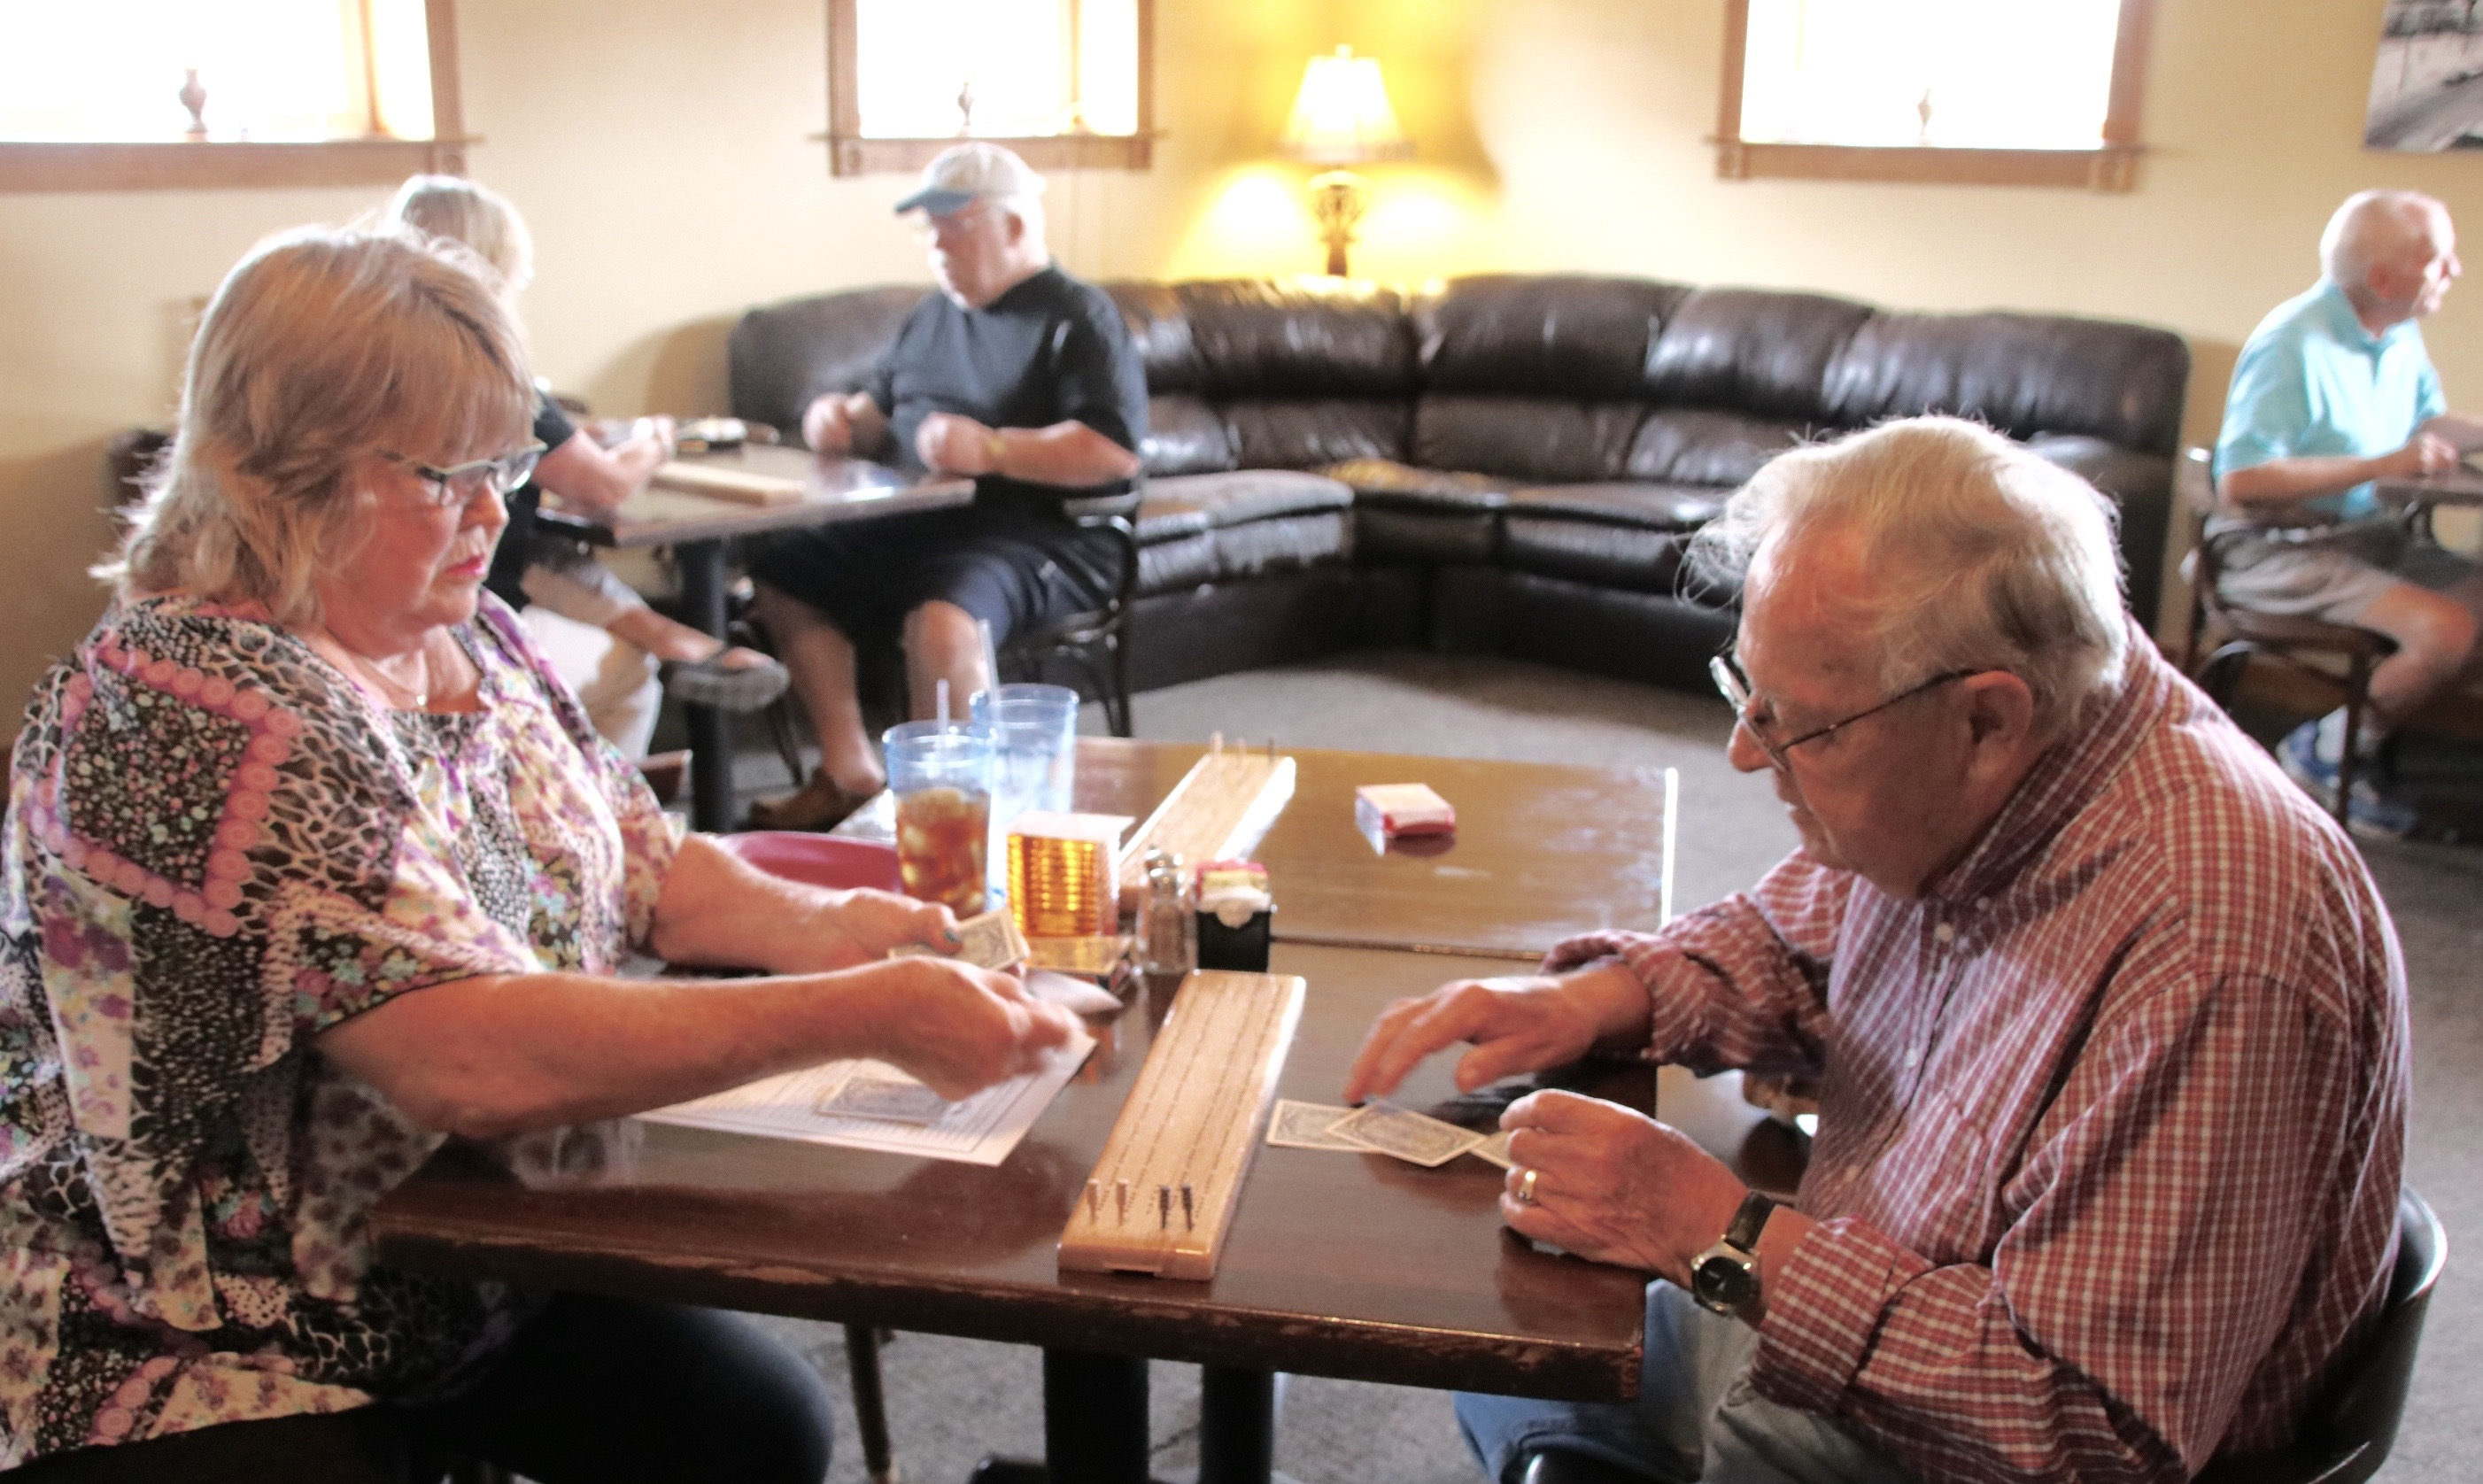 Kathy Messier deals cards for a cribbage game with Joe Hallstrom in the Sanford leg of the Great State of Maine Cribbage Tournament on Saturday at Back Street Grill. This Saturday, folks can take part in another leg of the tourney, at Waterboro Town Hall starting at 8:30 a.m. County and state championships will be held Sept. 30 at Saco Transportation Center. The  tournament benefits MemoryWorks, a non-profit that provides resources for people with dementia. TAMMY WELLS/Journal Tribune